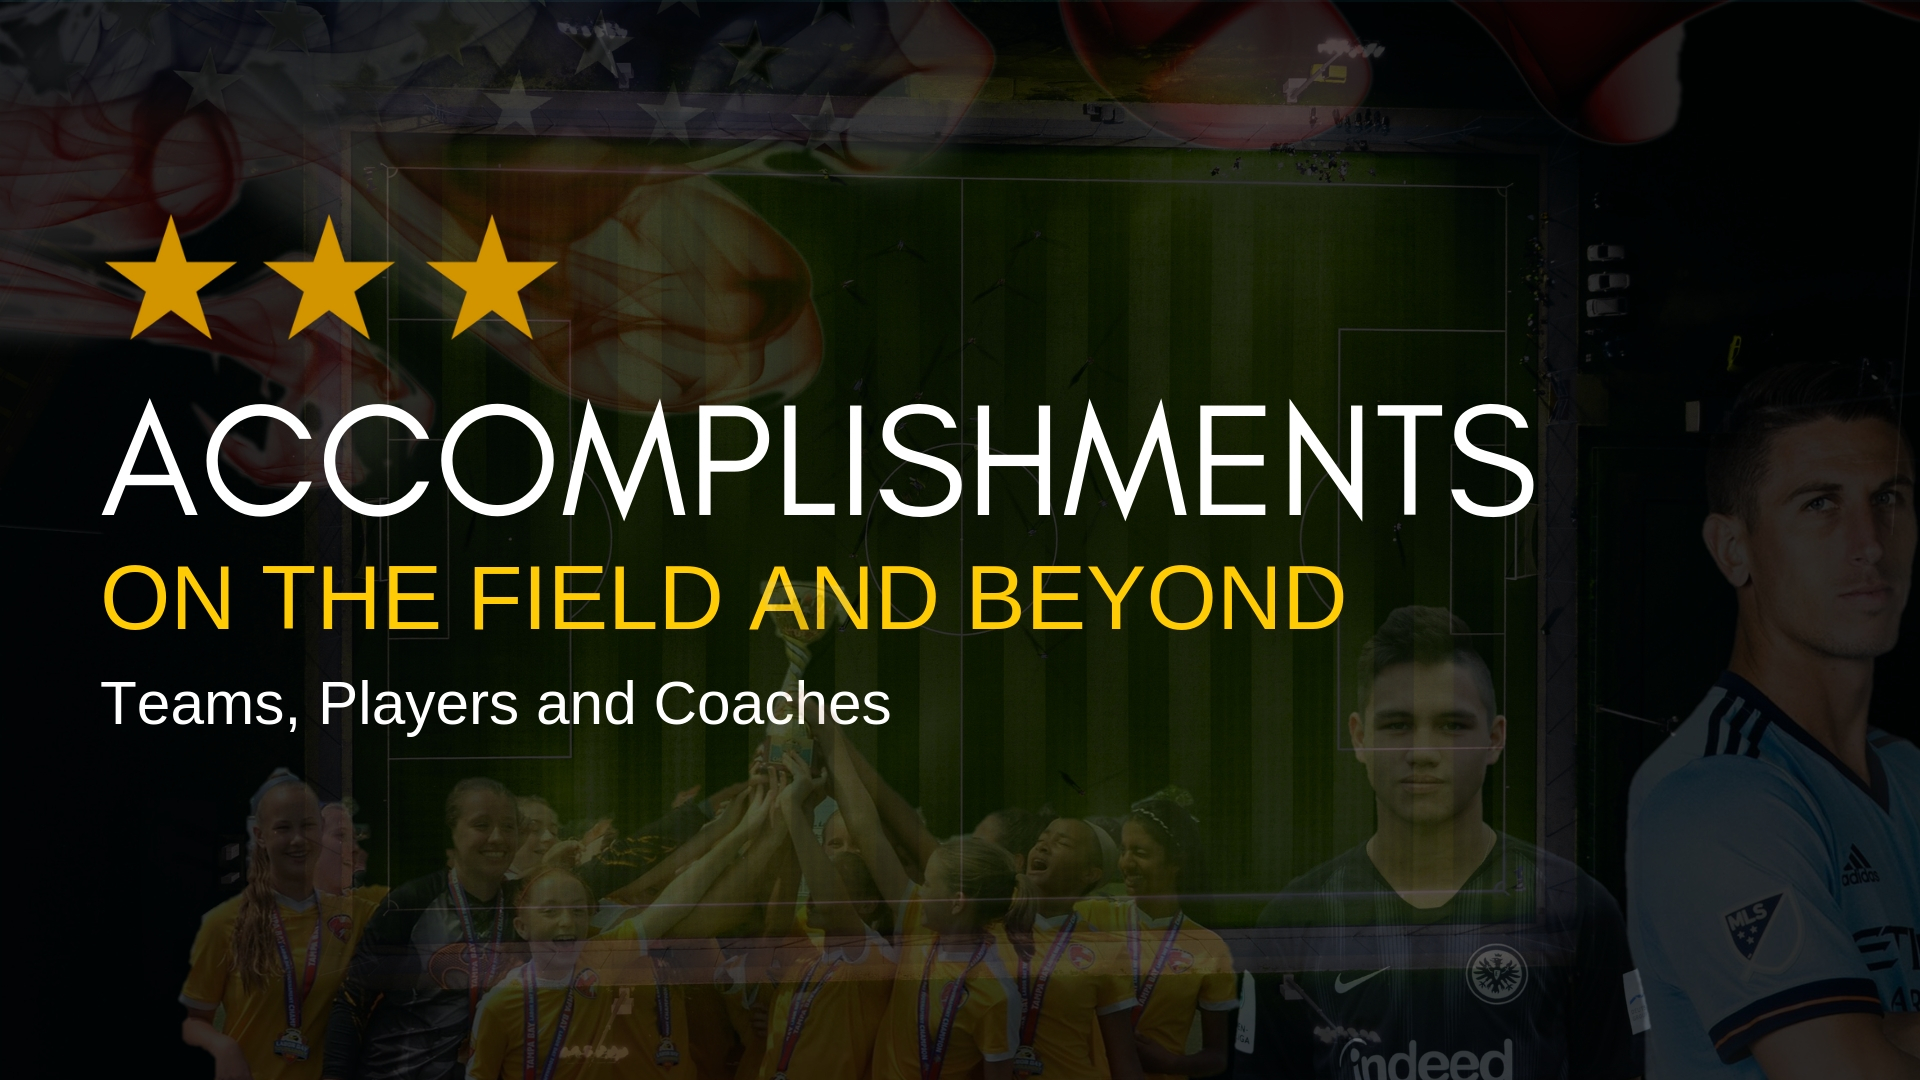 TEAM, PLAYER & COACH ACCOMPLISHMENTS